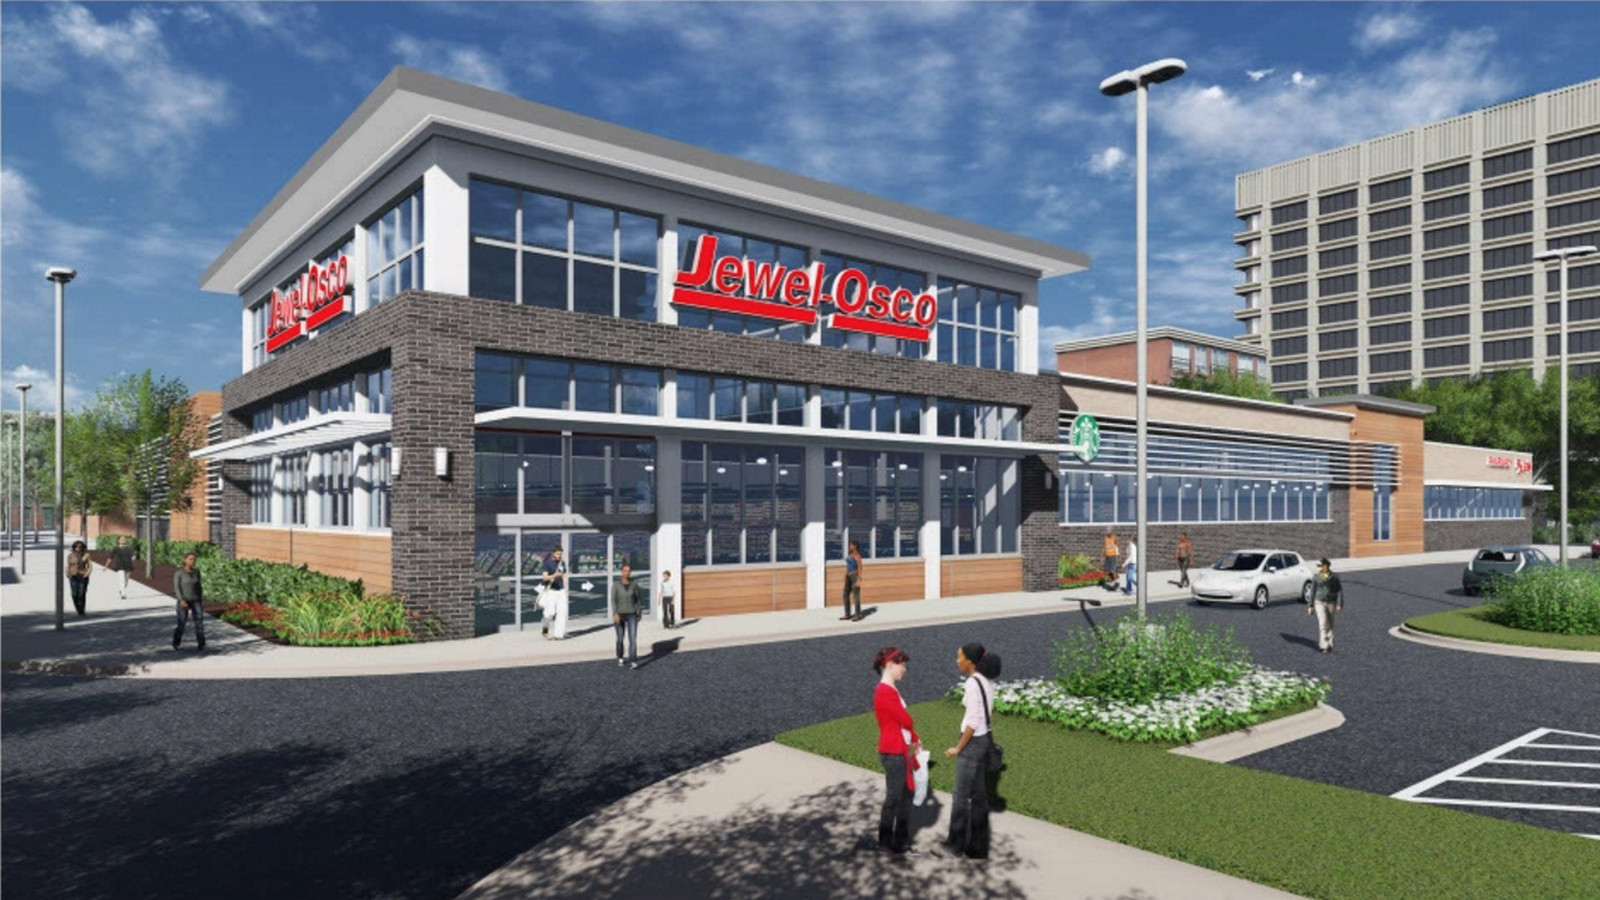 New Jewel Osco Grocery Store To Open In Woodlawn Next Year